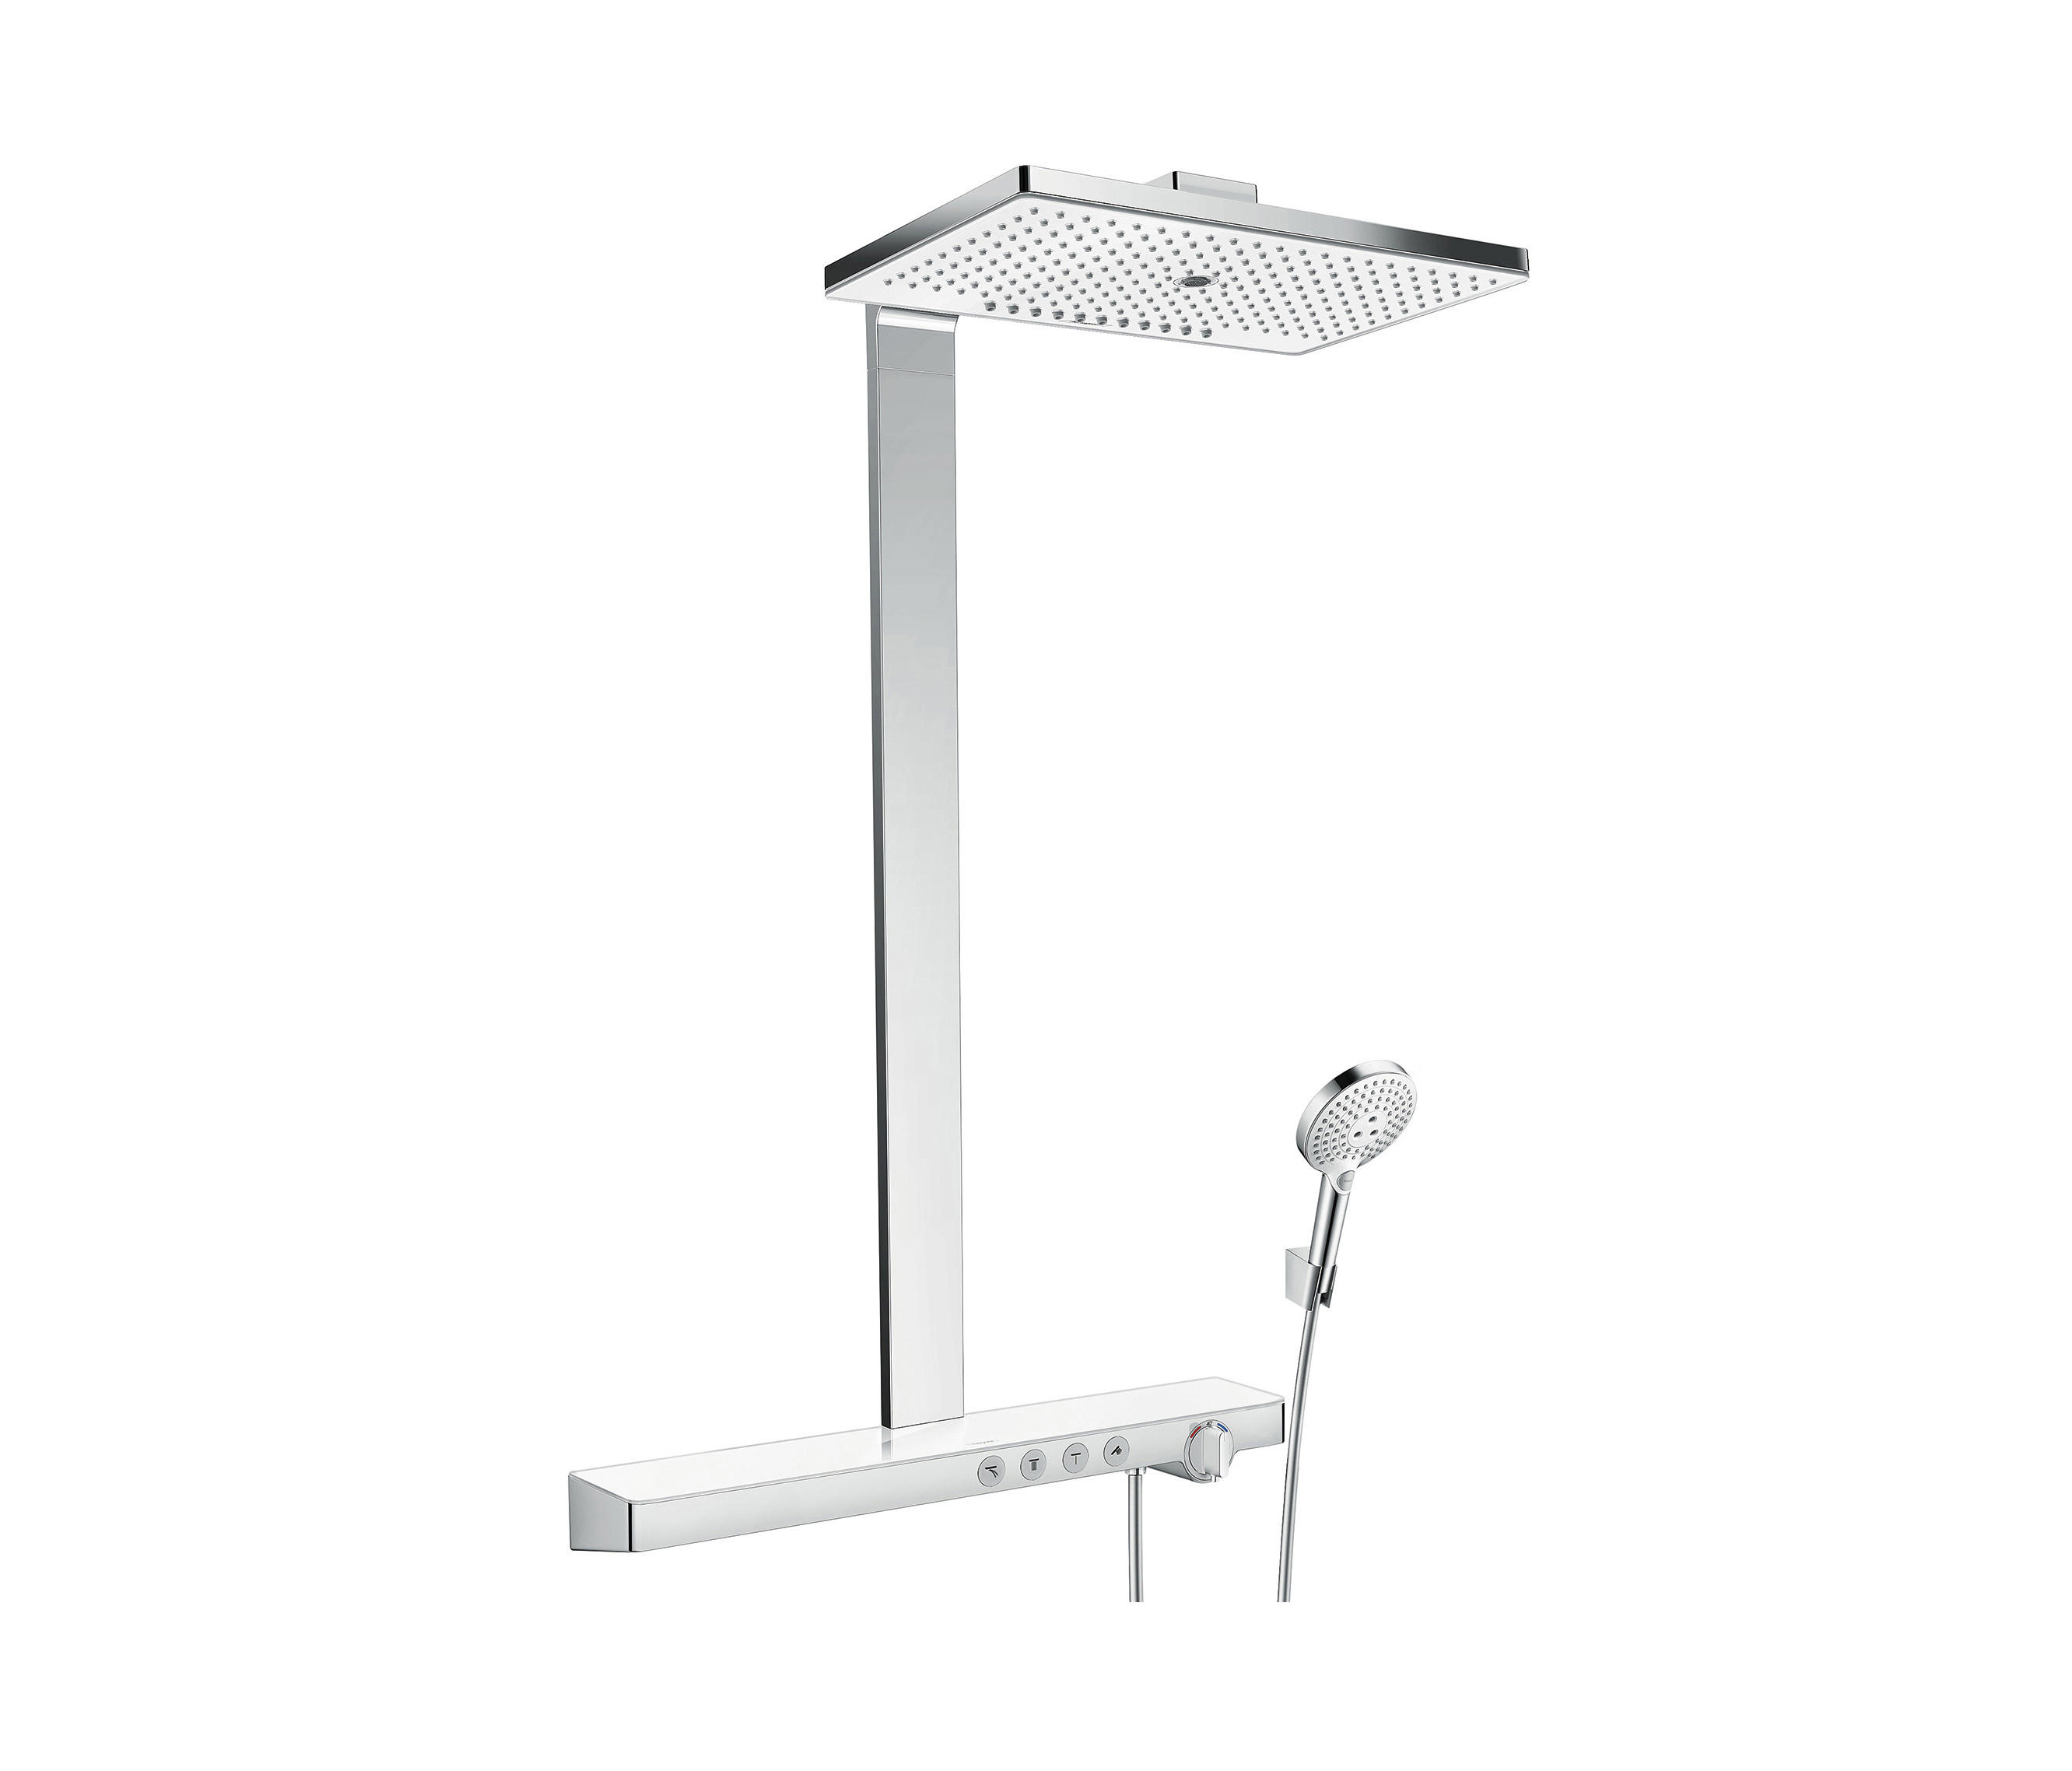 hansgrohe rainmaker select 460 3jet showerpipe duscharmaturen von hansgrohe architonic. Black Bedroom Furniture Sets. Home Design Ideas